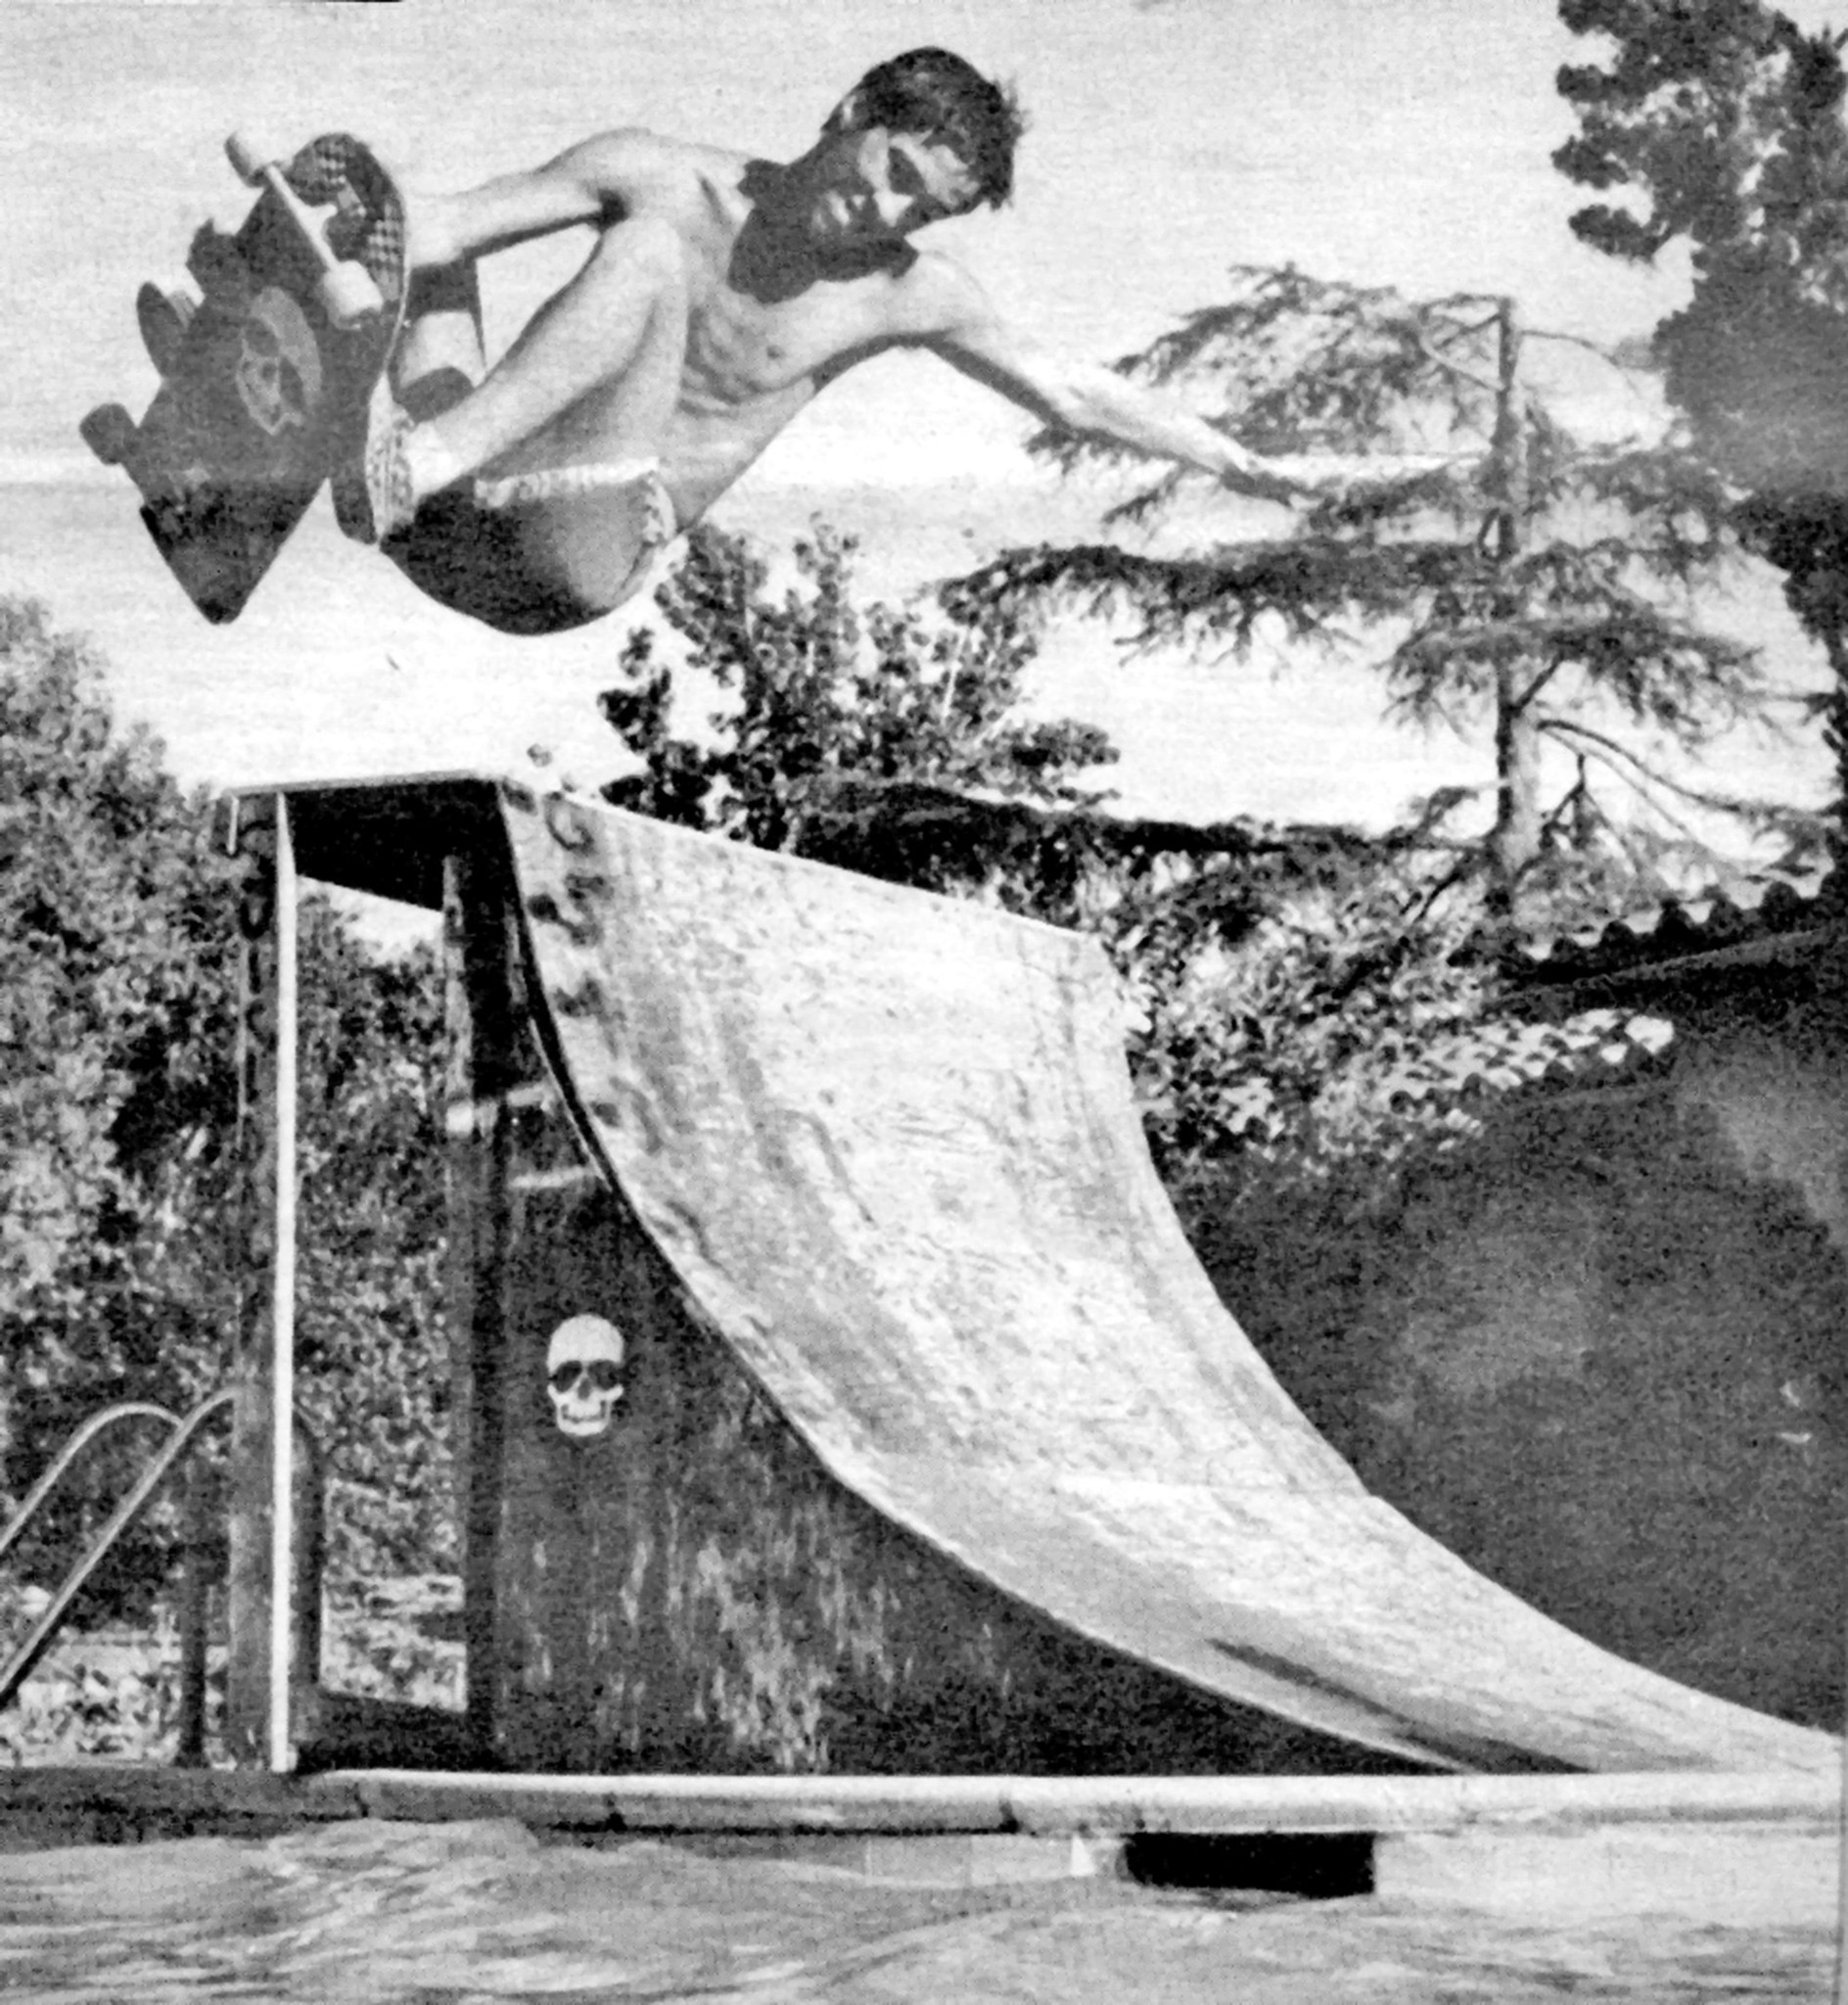 la cañada history skateboard ramp comes in handy for a dip in the